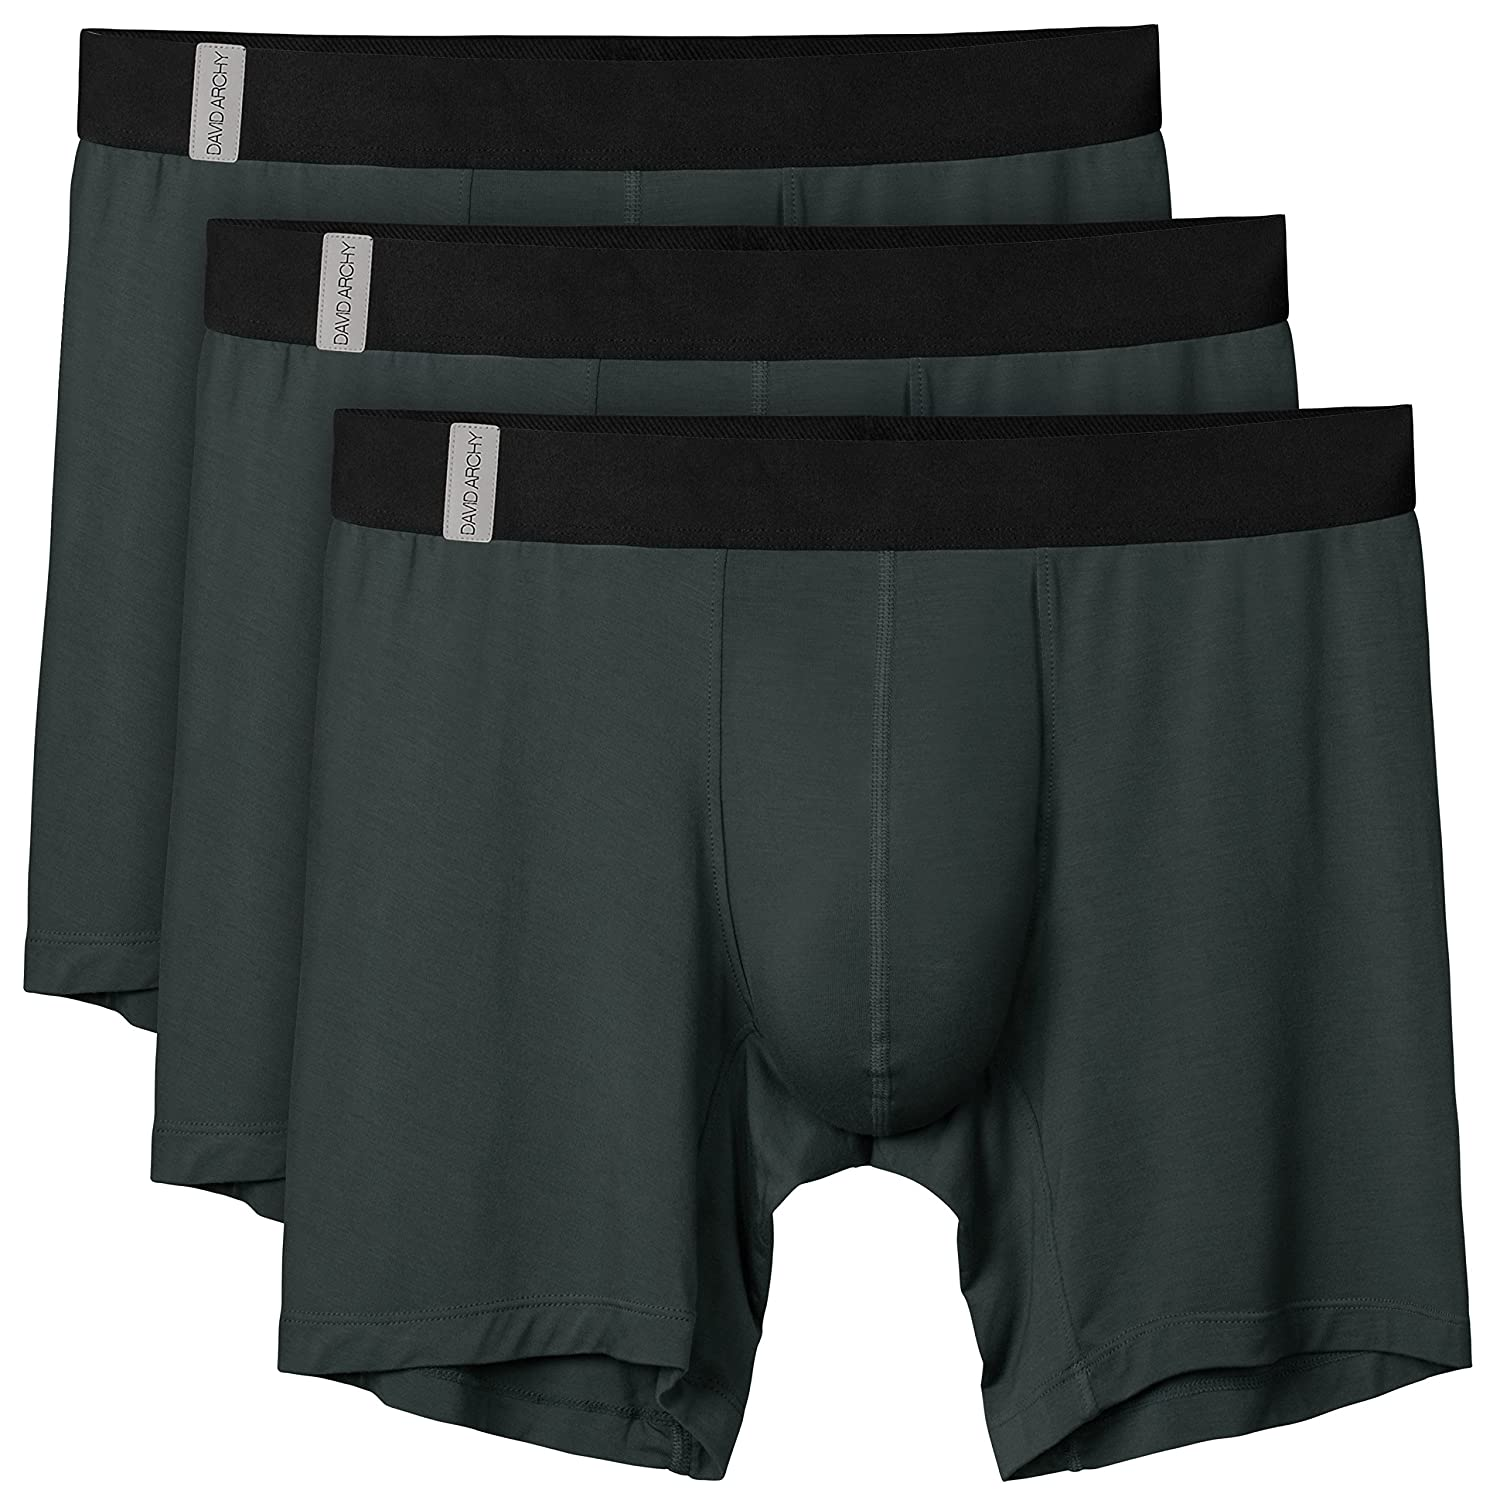 David Archy Men's 3 Pack Soft Breathable Bamboo Rayon Boxer Briefs CN-Smashing